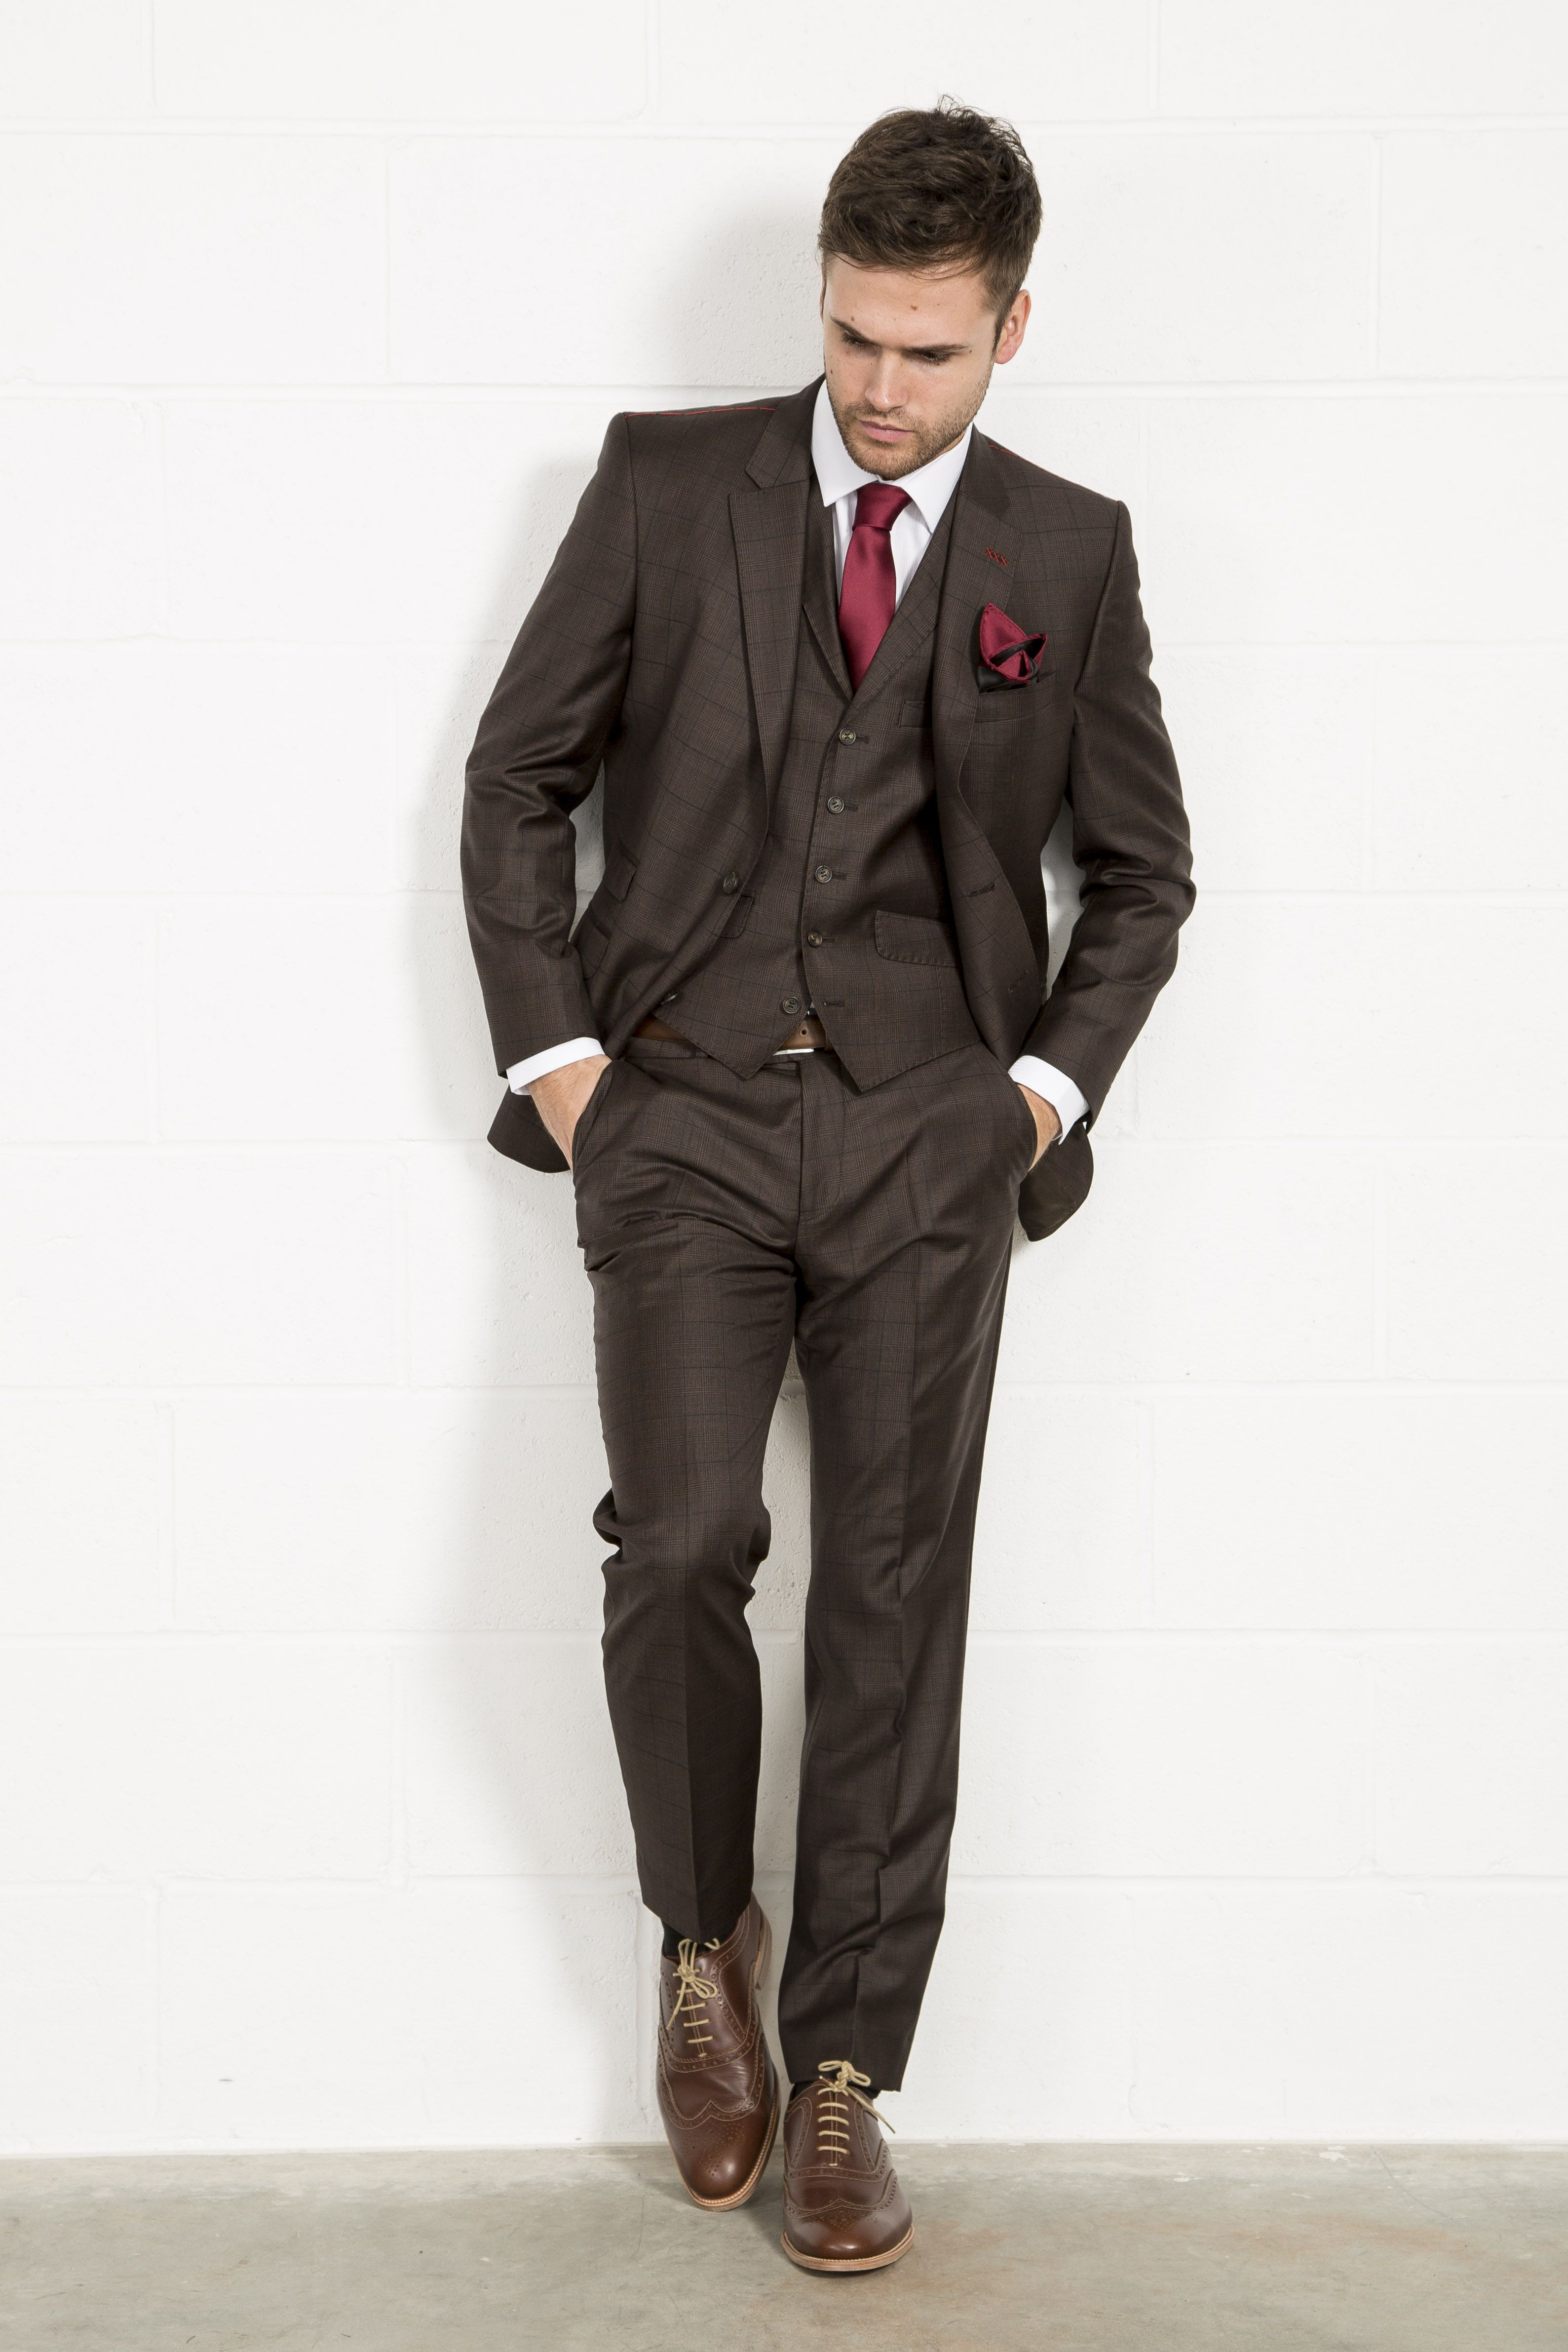 JIMMY BEE Luxury Wool Mix Brown Check Three Piece Suit // Slater ...